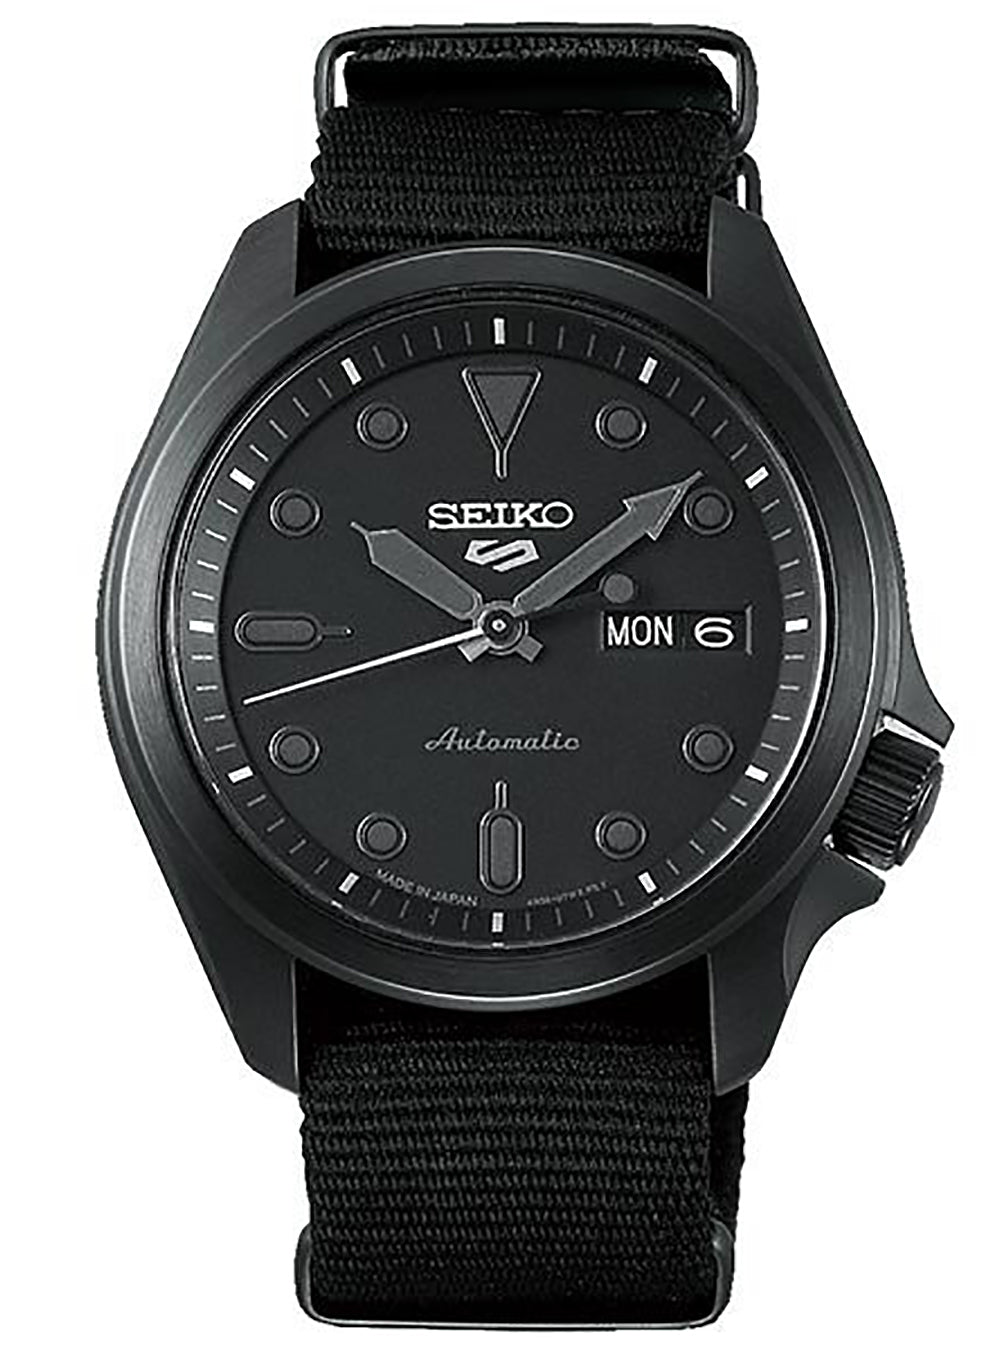 SEIKO 5 SPORTS STREET STYLE SBSA059 MADE IN JAPAN JDM